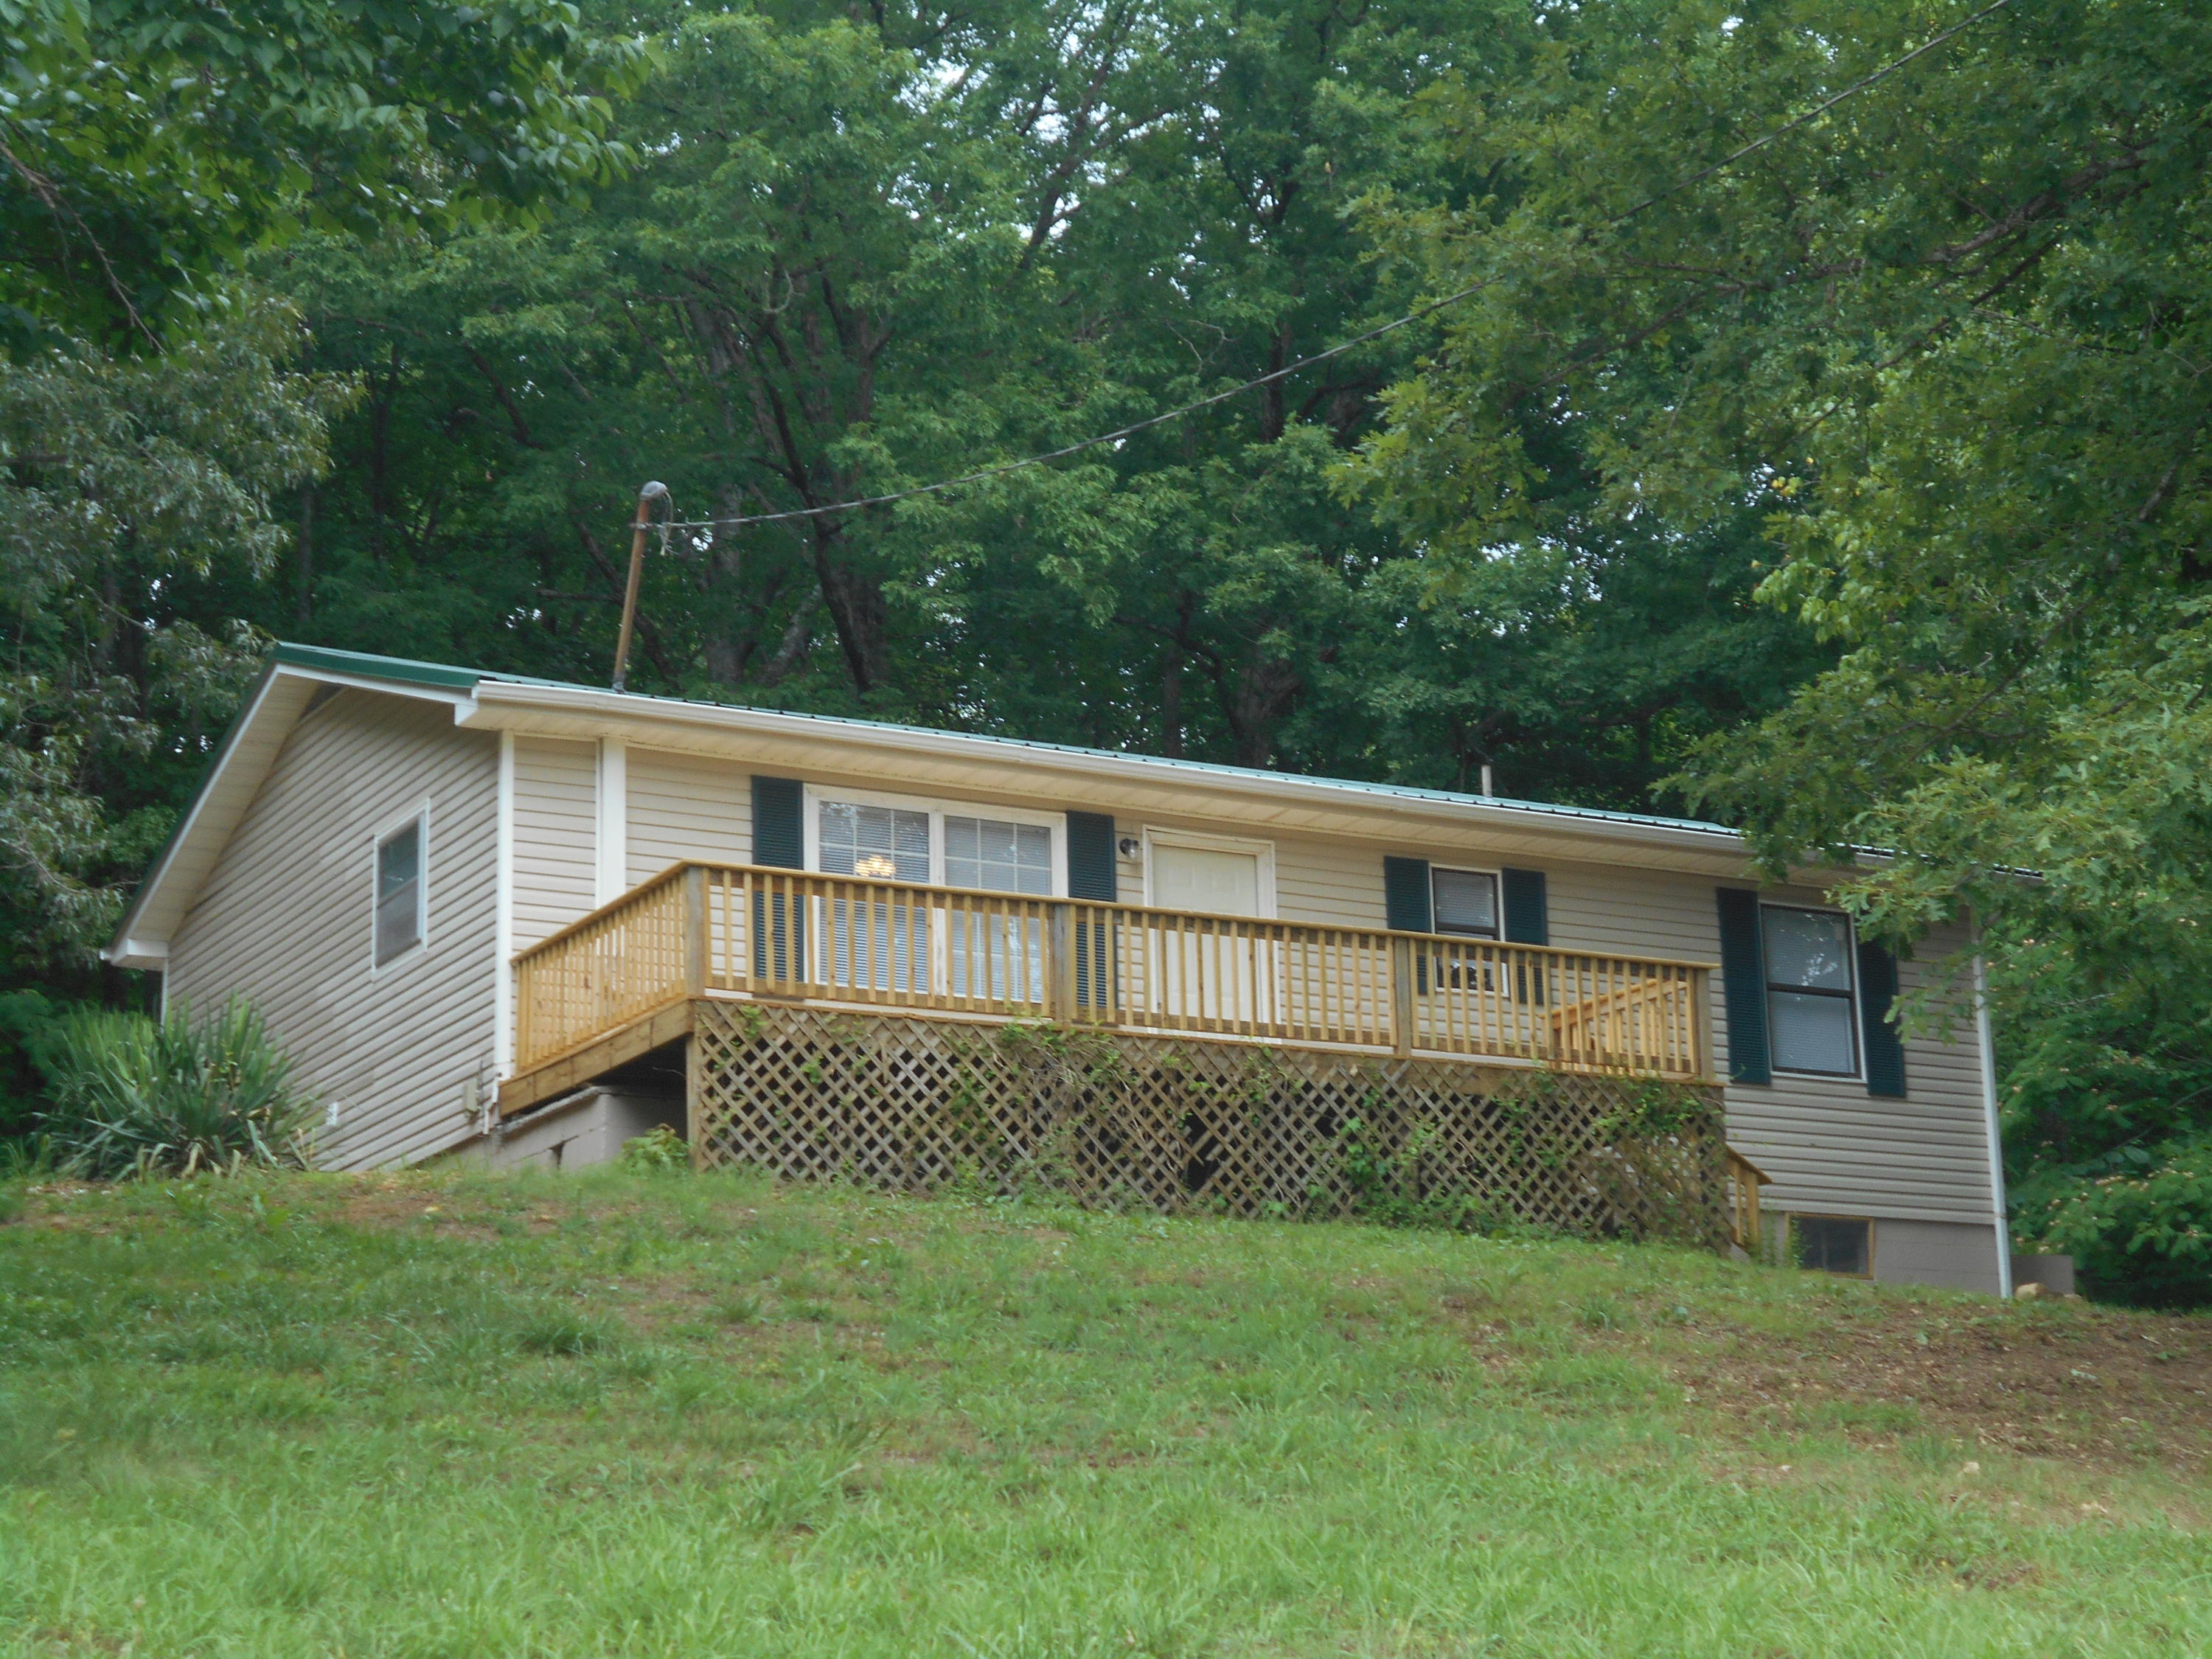 967 Swannsylvania, Dandridge, Tennessee, United States 37725, 3 Bedrooms Bedrooms, ,1 BathroomBathrooms,Single Family,For Sale,Swannsylvania,1120514